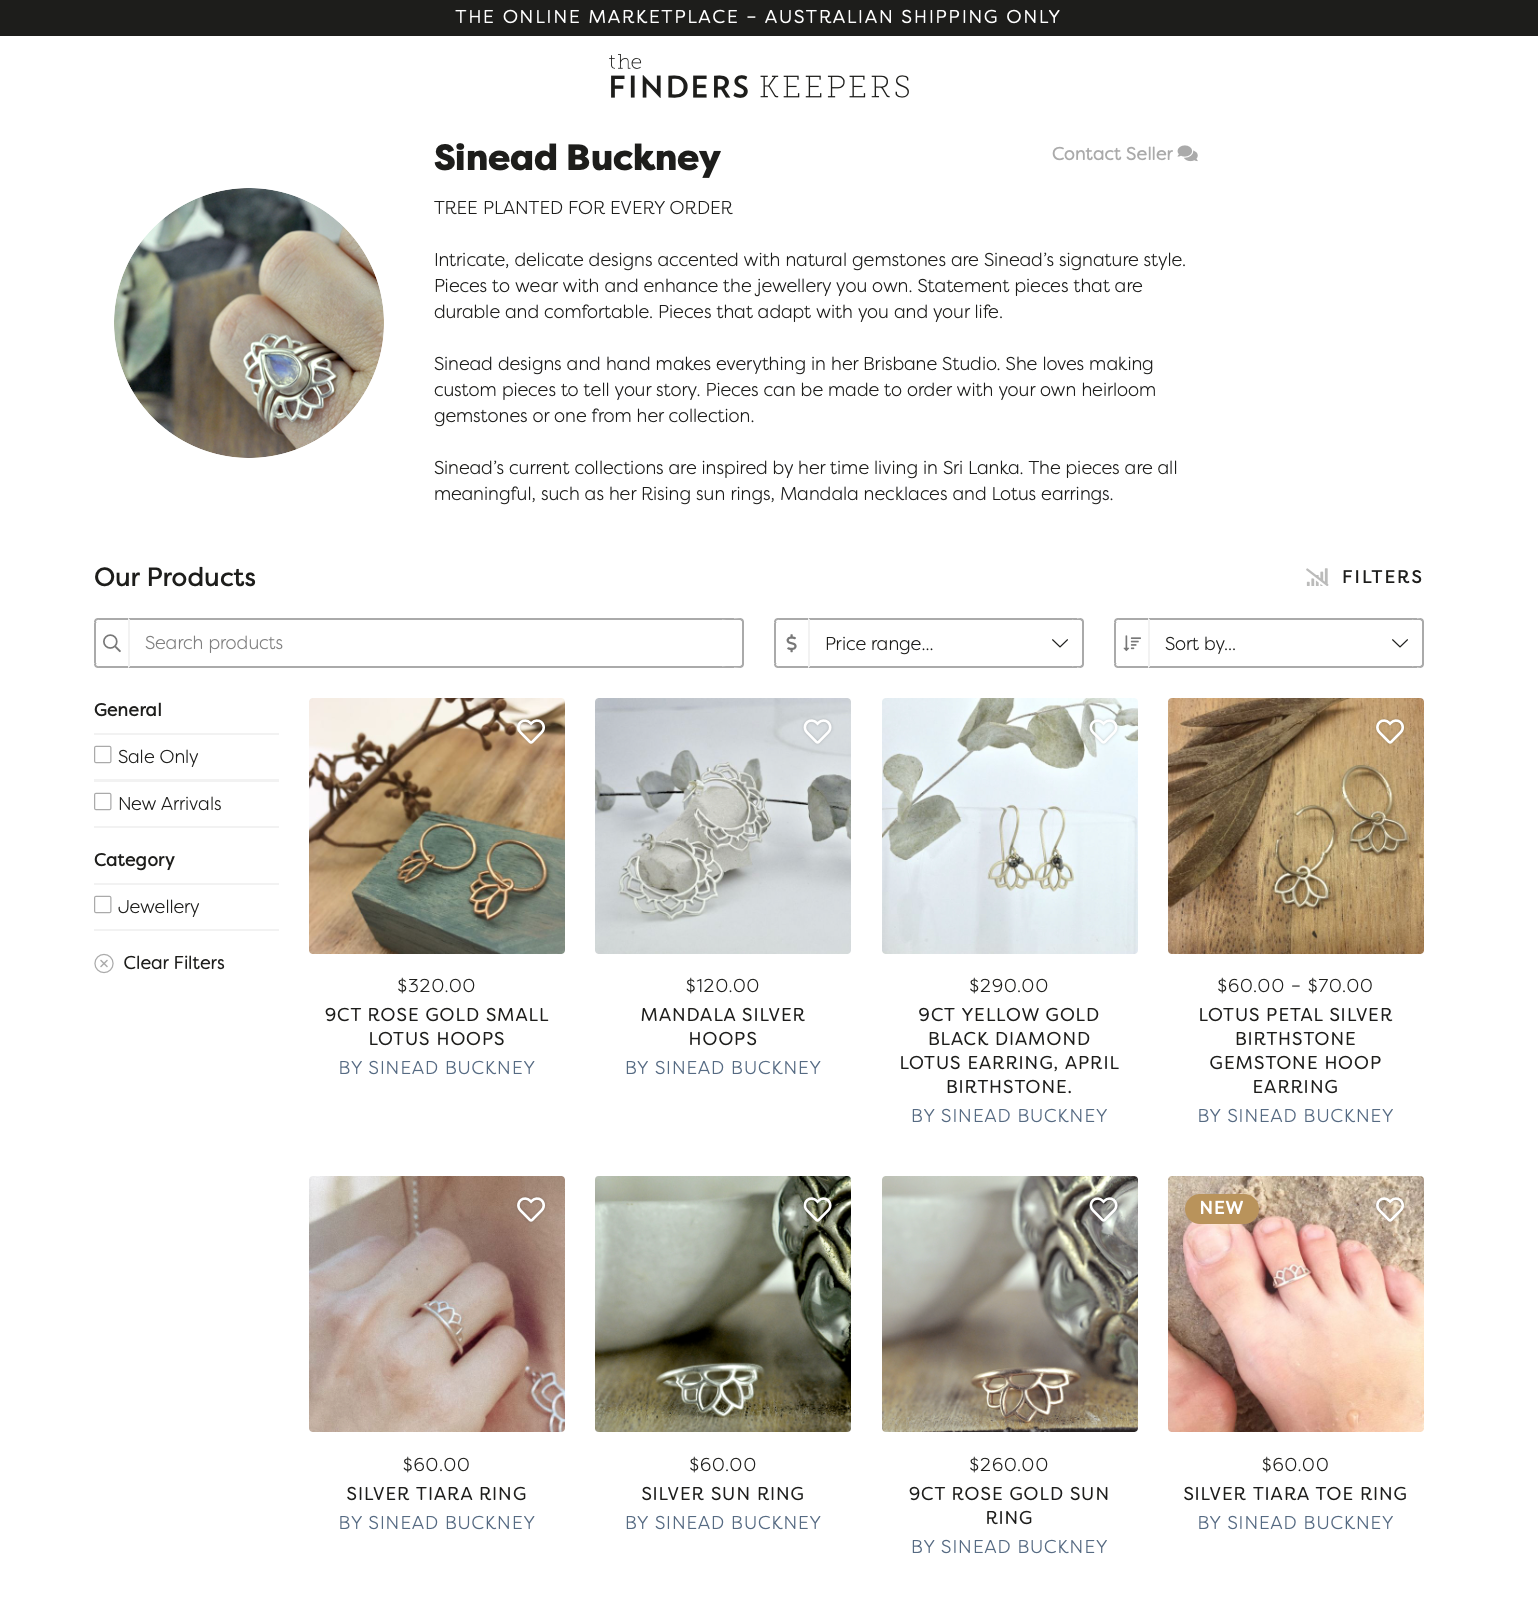 Sinead Buckney in Finders Keepers online directory